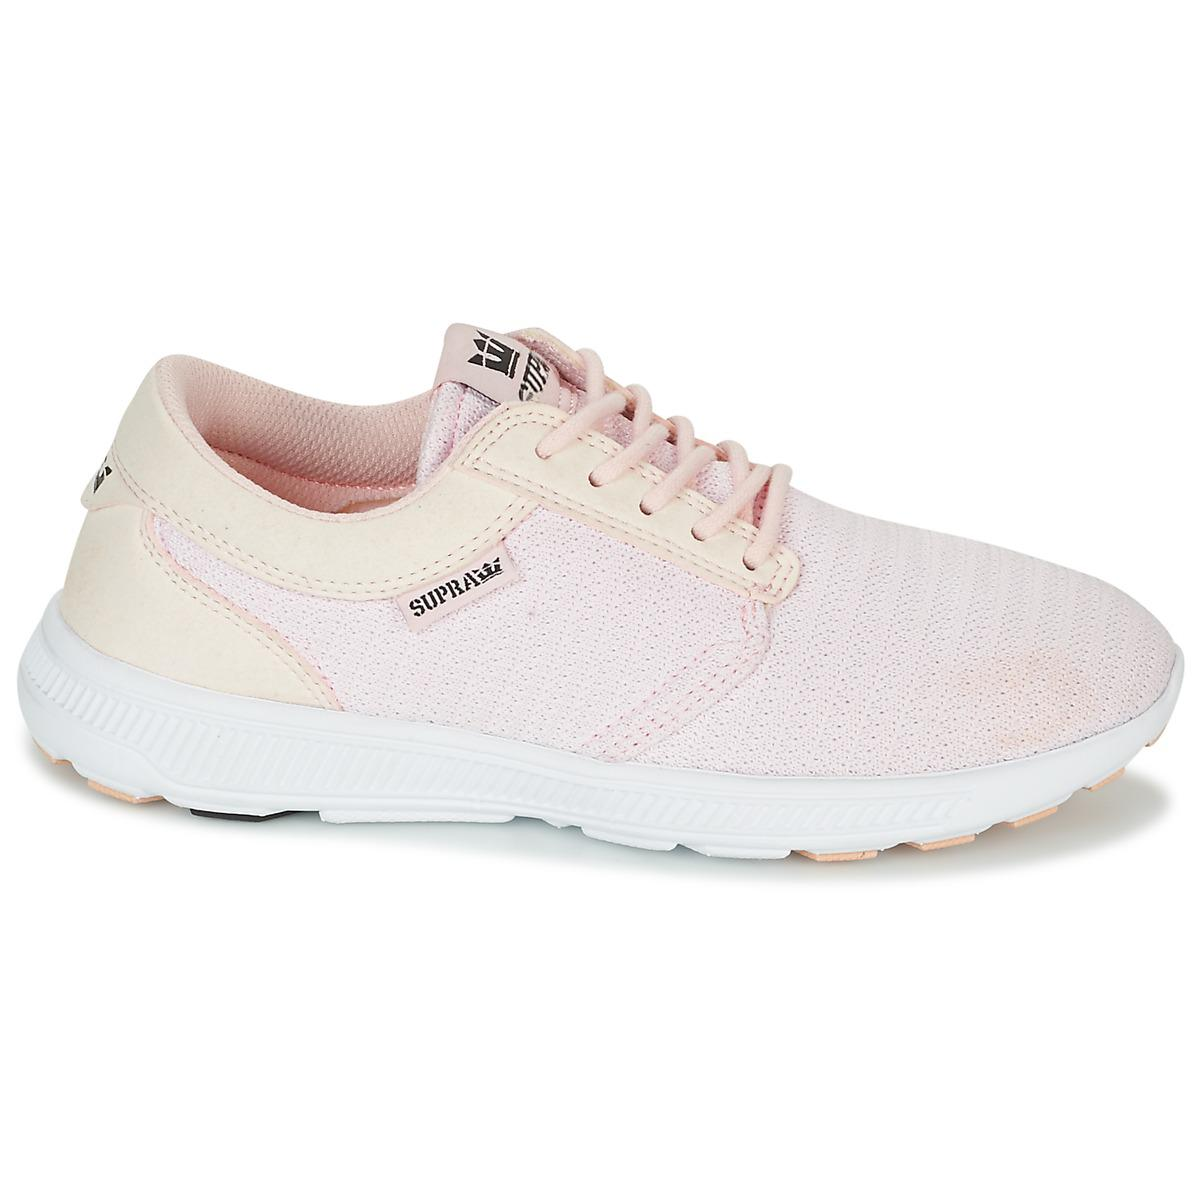 trainers Hammer Supra Lyst Pink Run Women's Womens Shoes In RXwnqSHwx